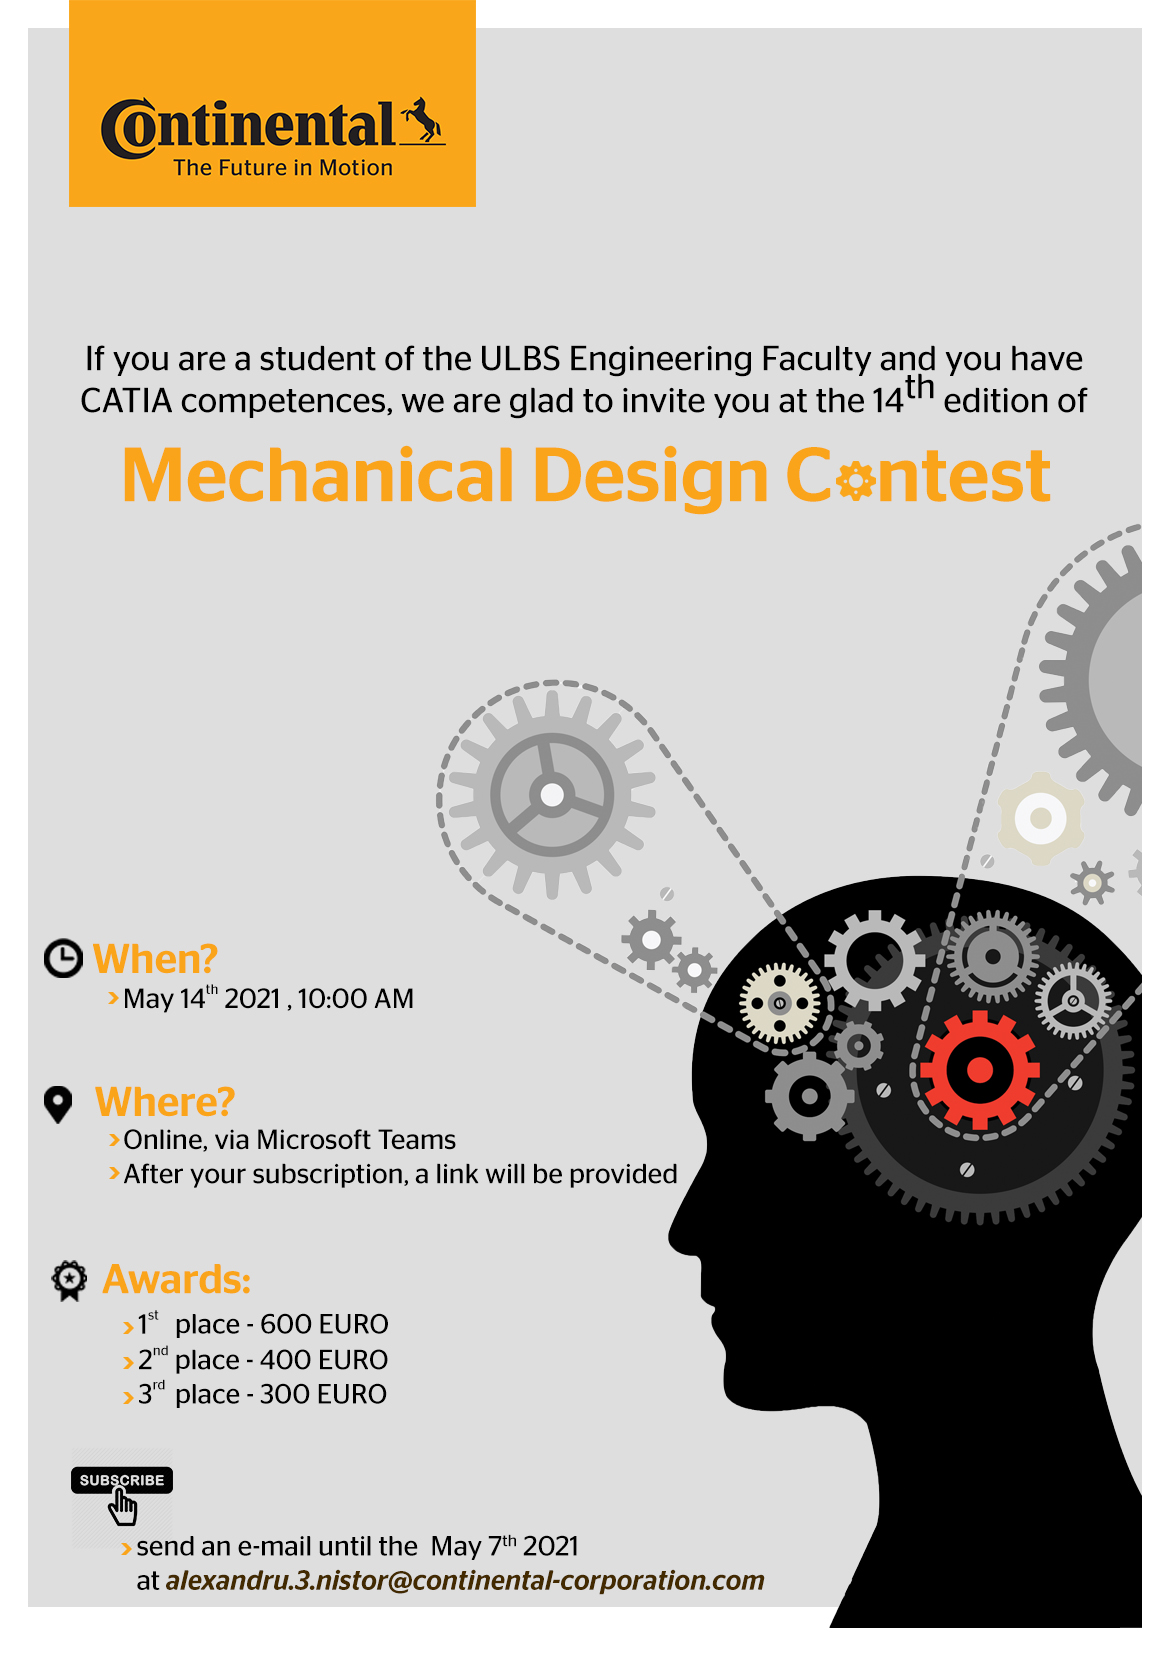 Continental Mechanical Design Contest 2021